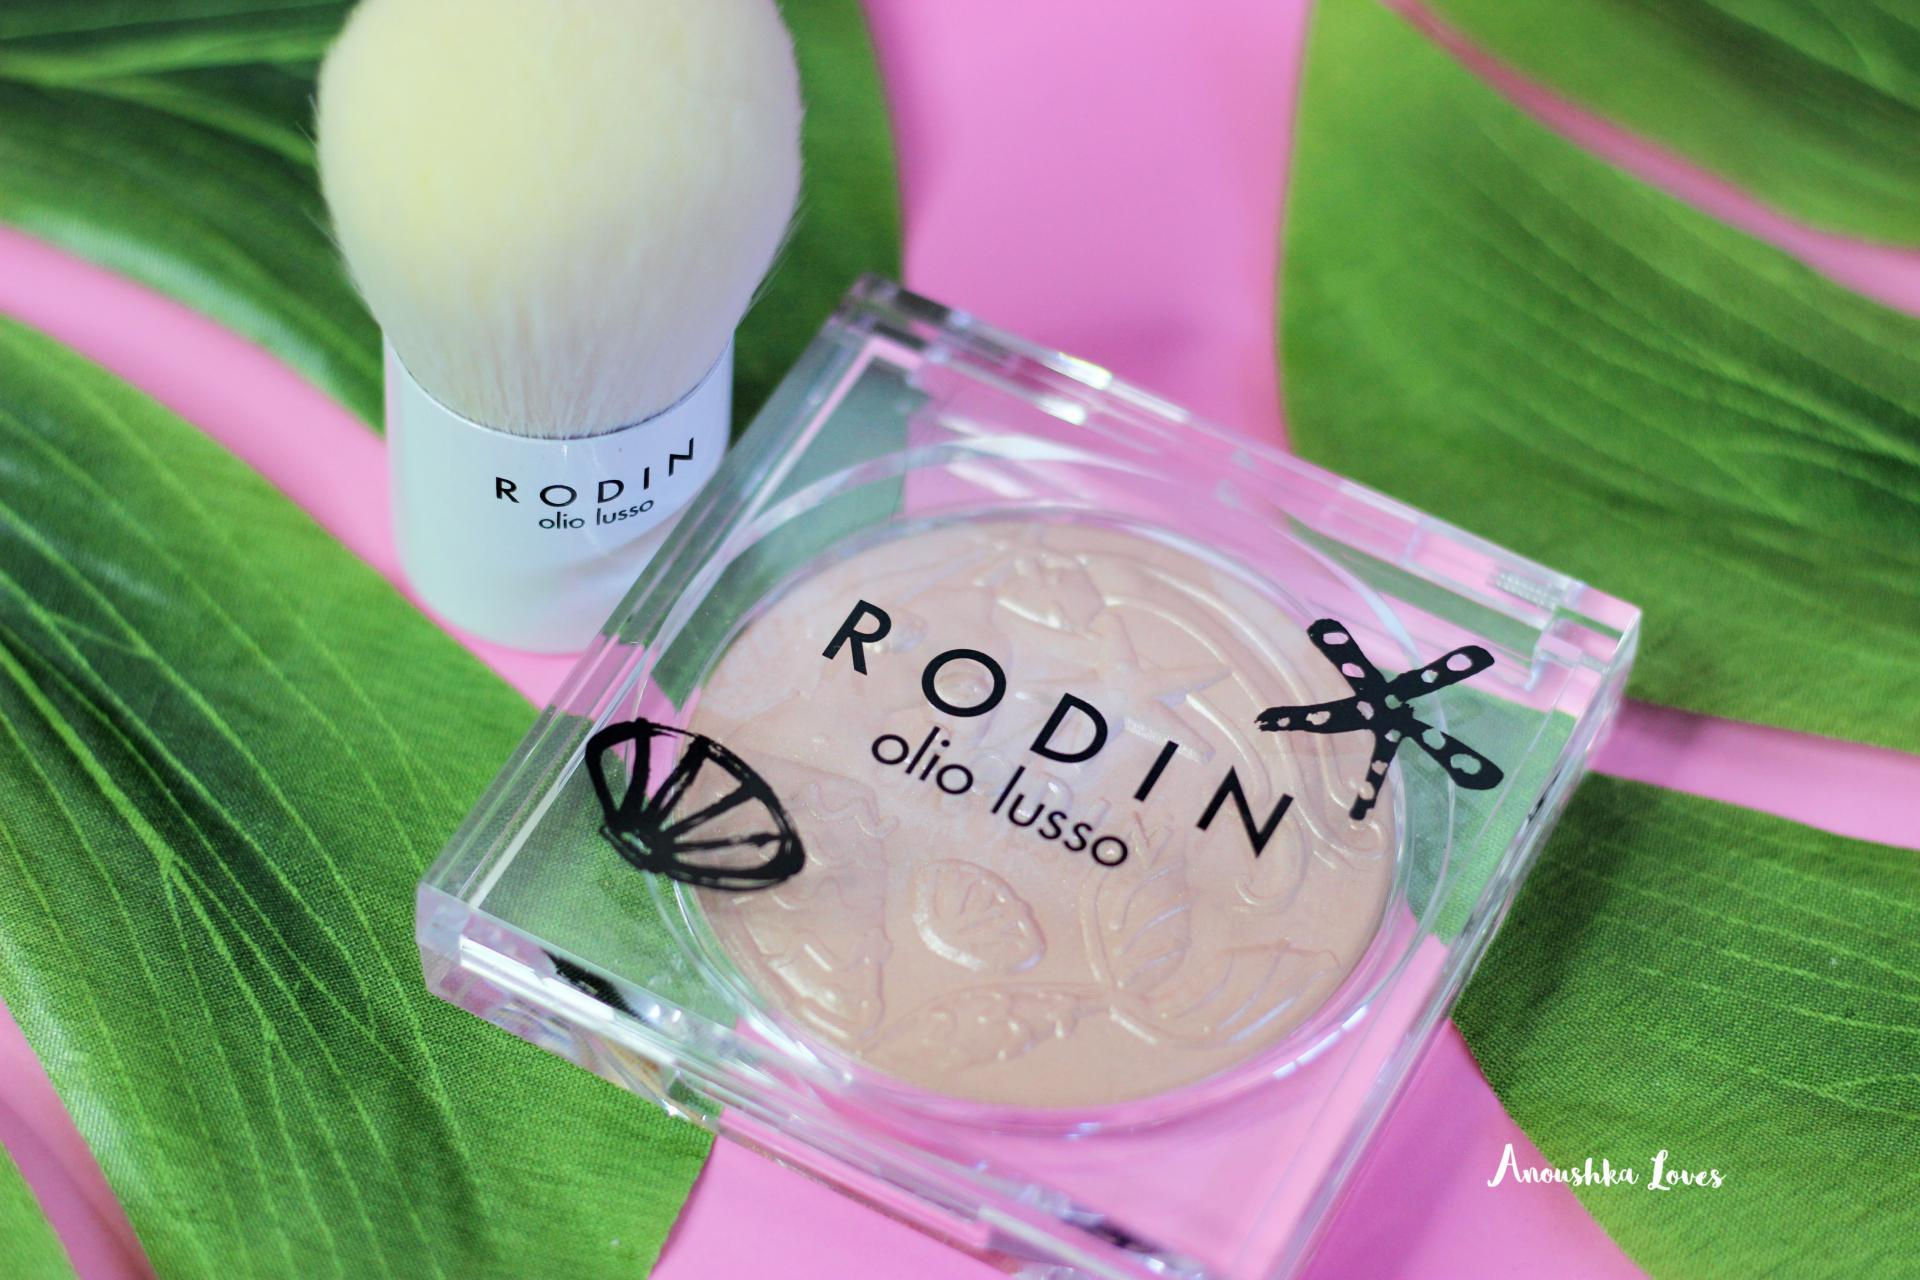 Rodin Olio Lusso Mermaid Collection